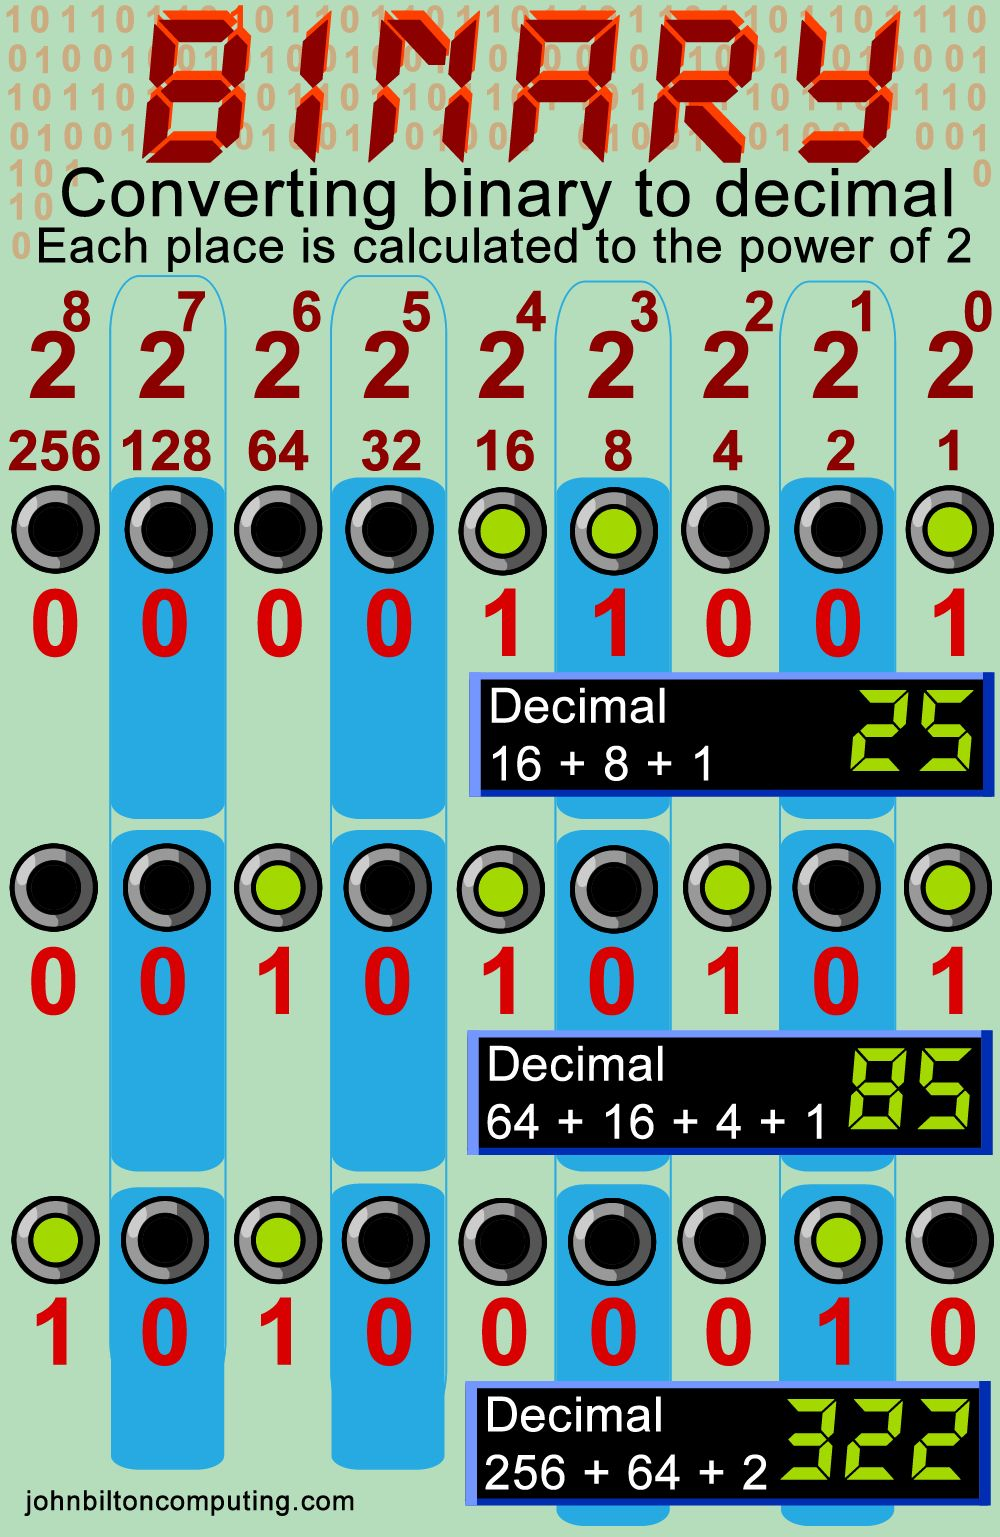 Binary Numbers Explained How To Convert Binary Into Decimal Computer Science Computer Knowledge Computer Technology